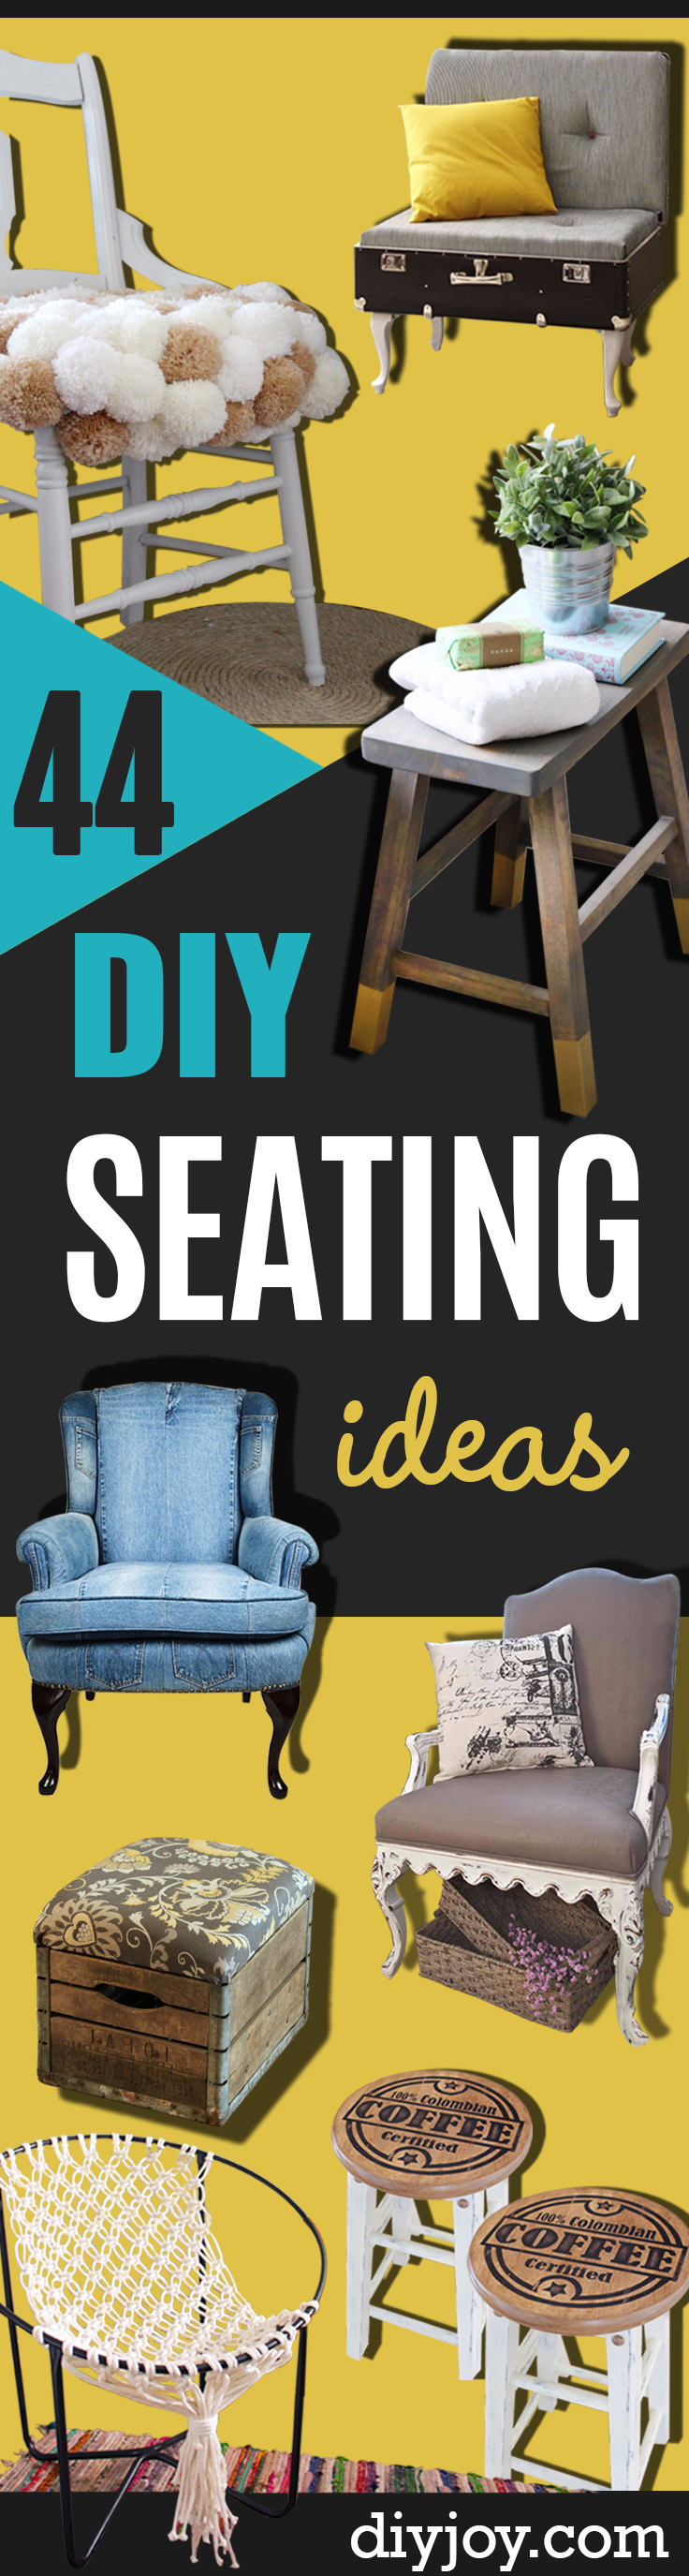 DIY Seating Ideas   Creative Indoor Furniture, Chairs And Easy Seat  Projects For Living Room